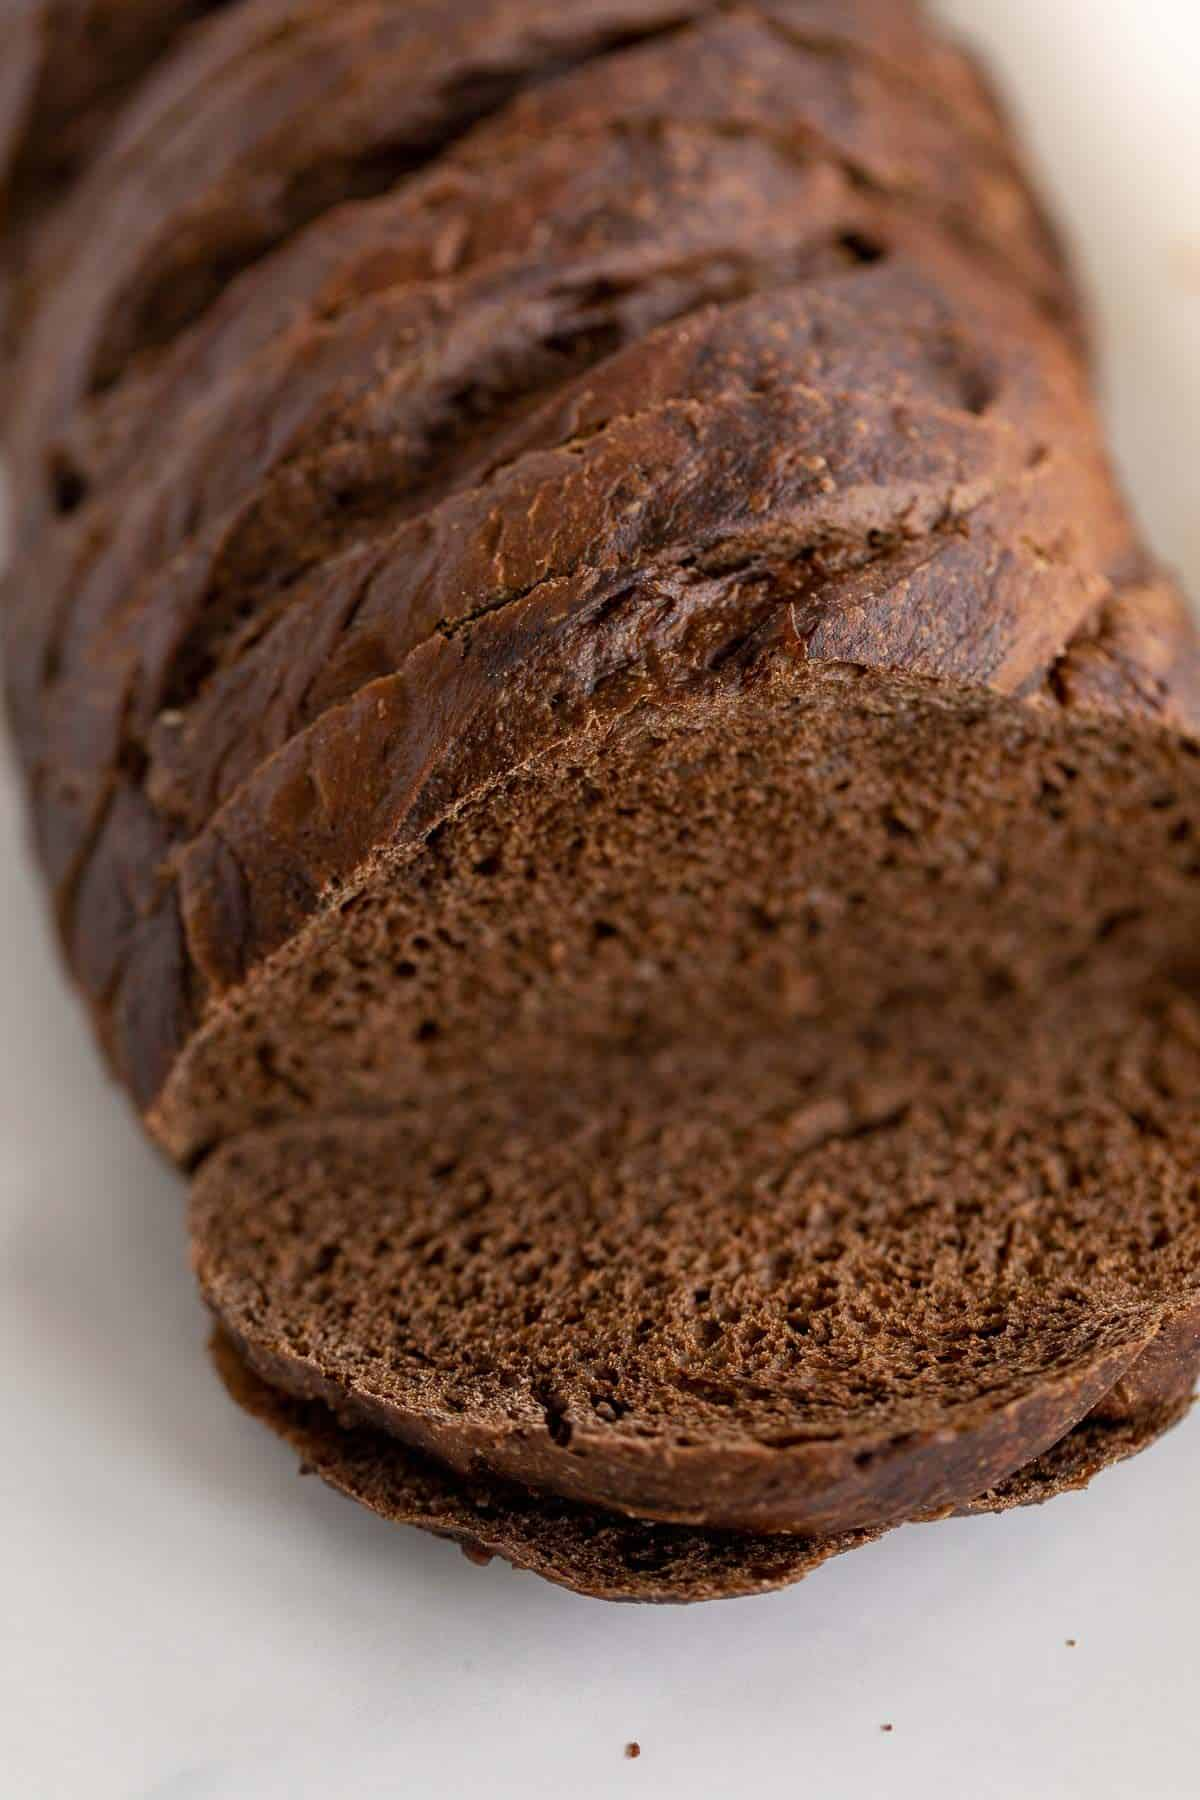 A loaf of dark rye bread, sliced on a marble countertop.